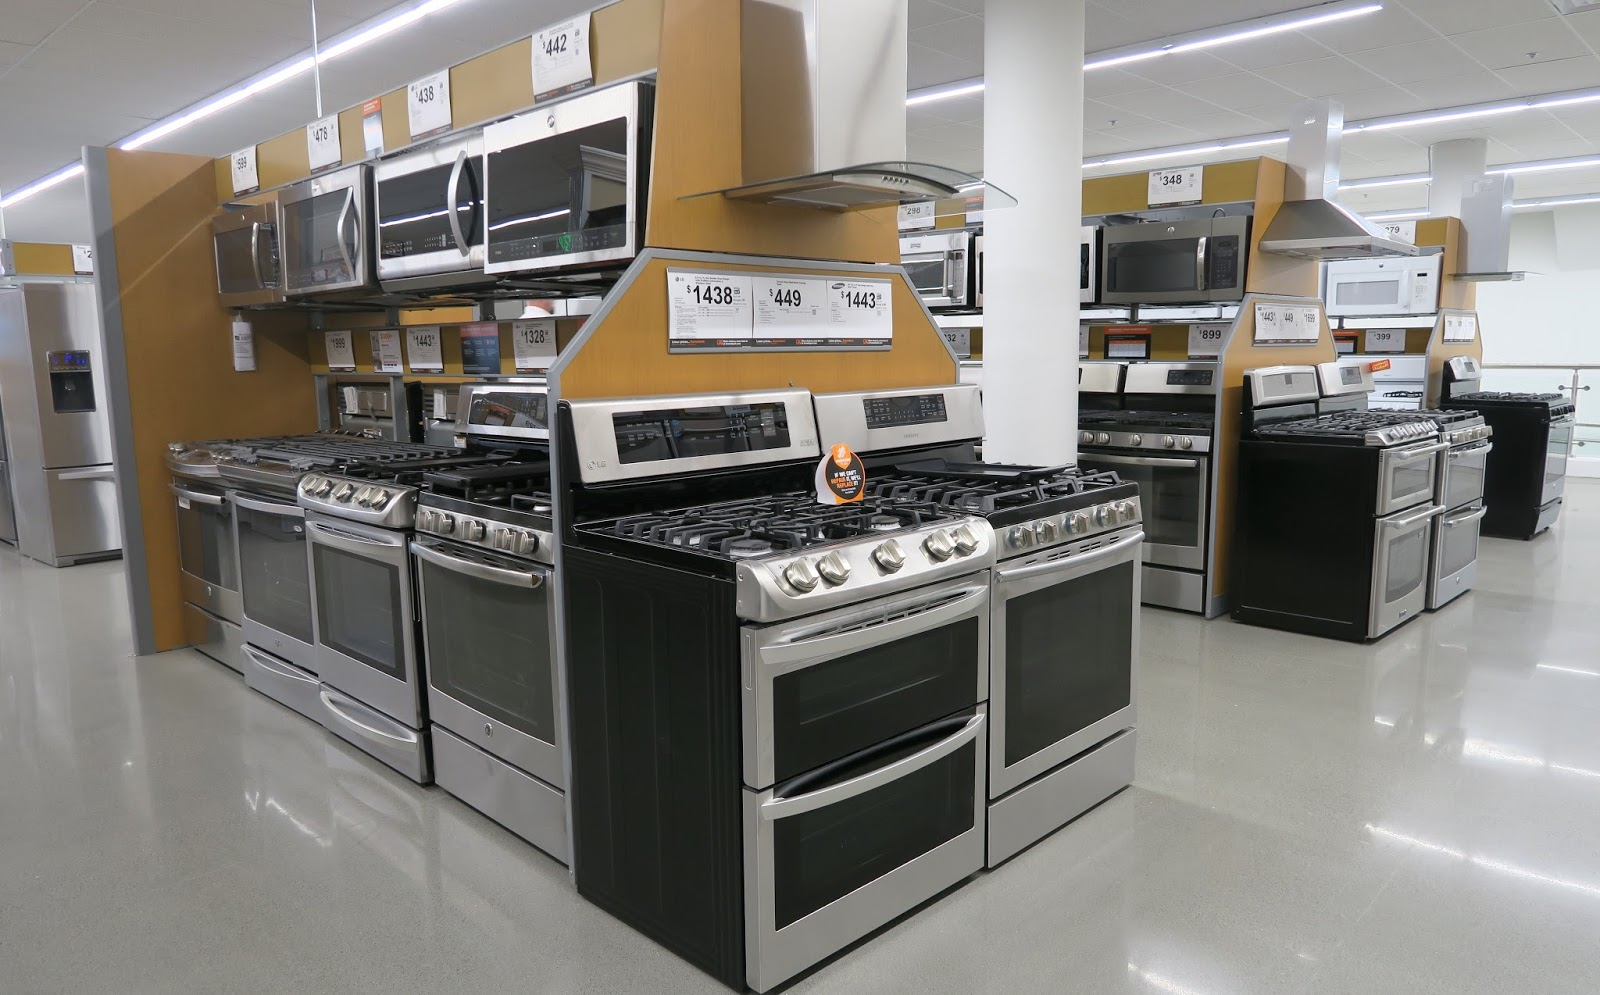 The annandale blog expanded home depot now open - Home depot kitchen appliances ...